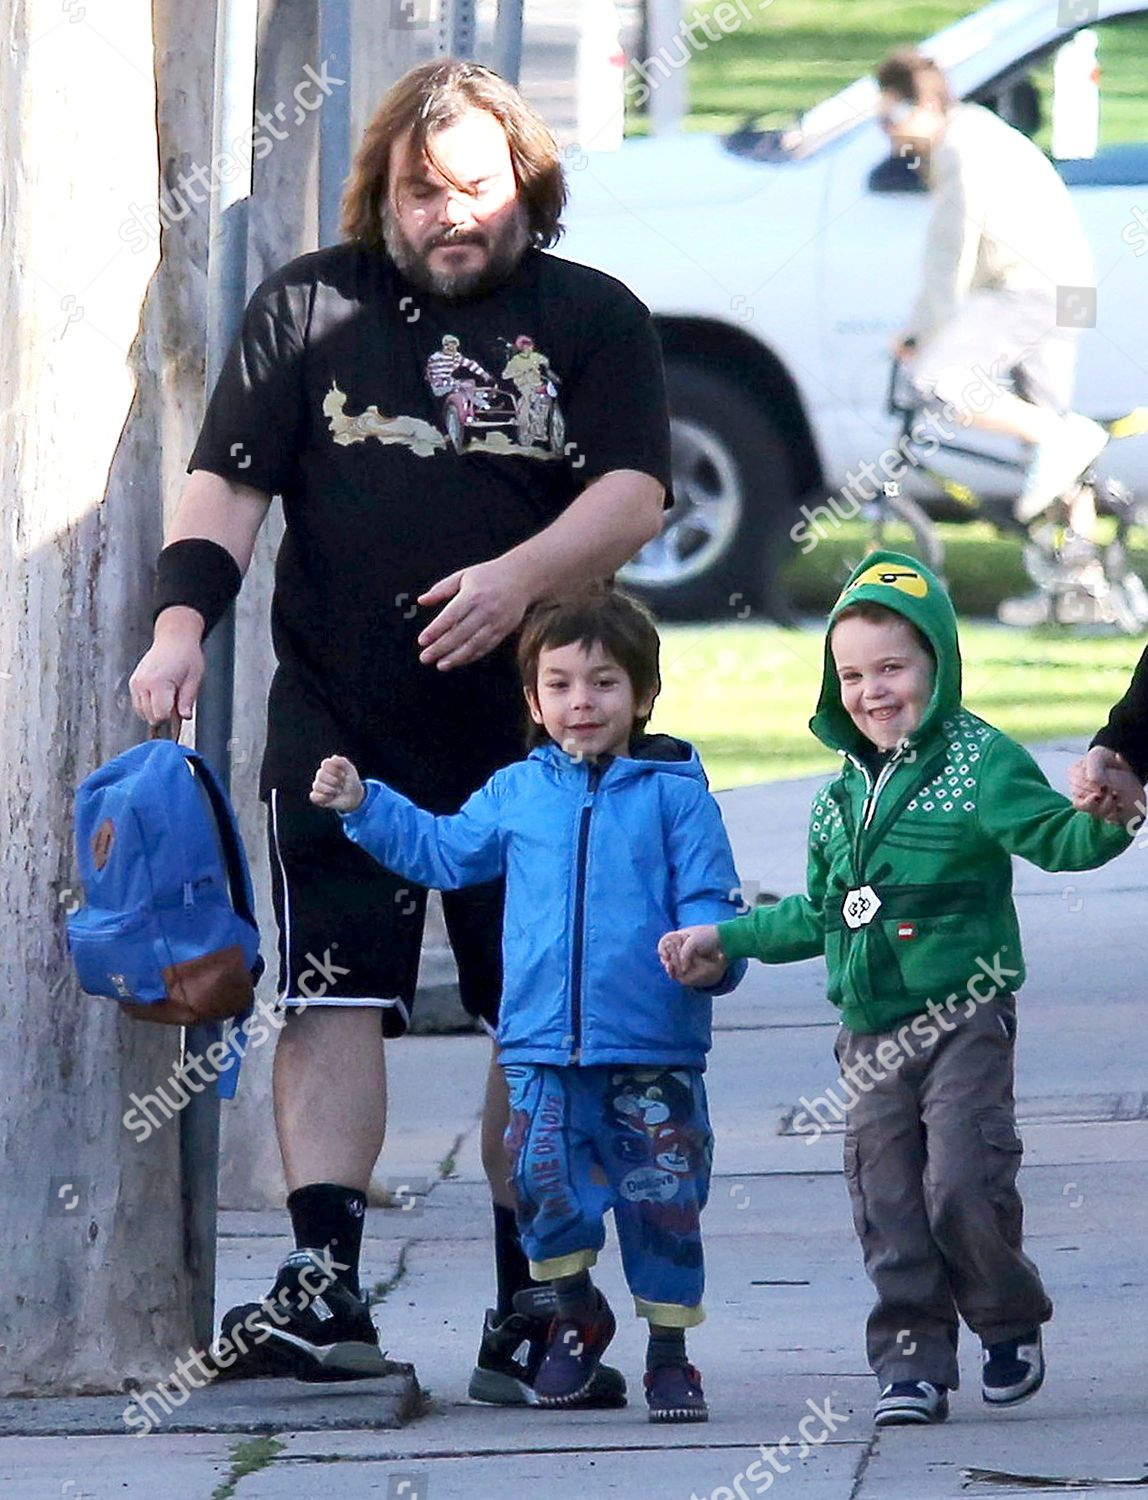 Jack Black Thomas David Black Samuel Jason Editorial Stock Photo Stock Image Shutterstock Isn't unhappiness, to some degree, a matter of choice? https www shutterstock com editorial image editorial jack black out and about in los angeles america 20 feb 2013 2157465b